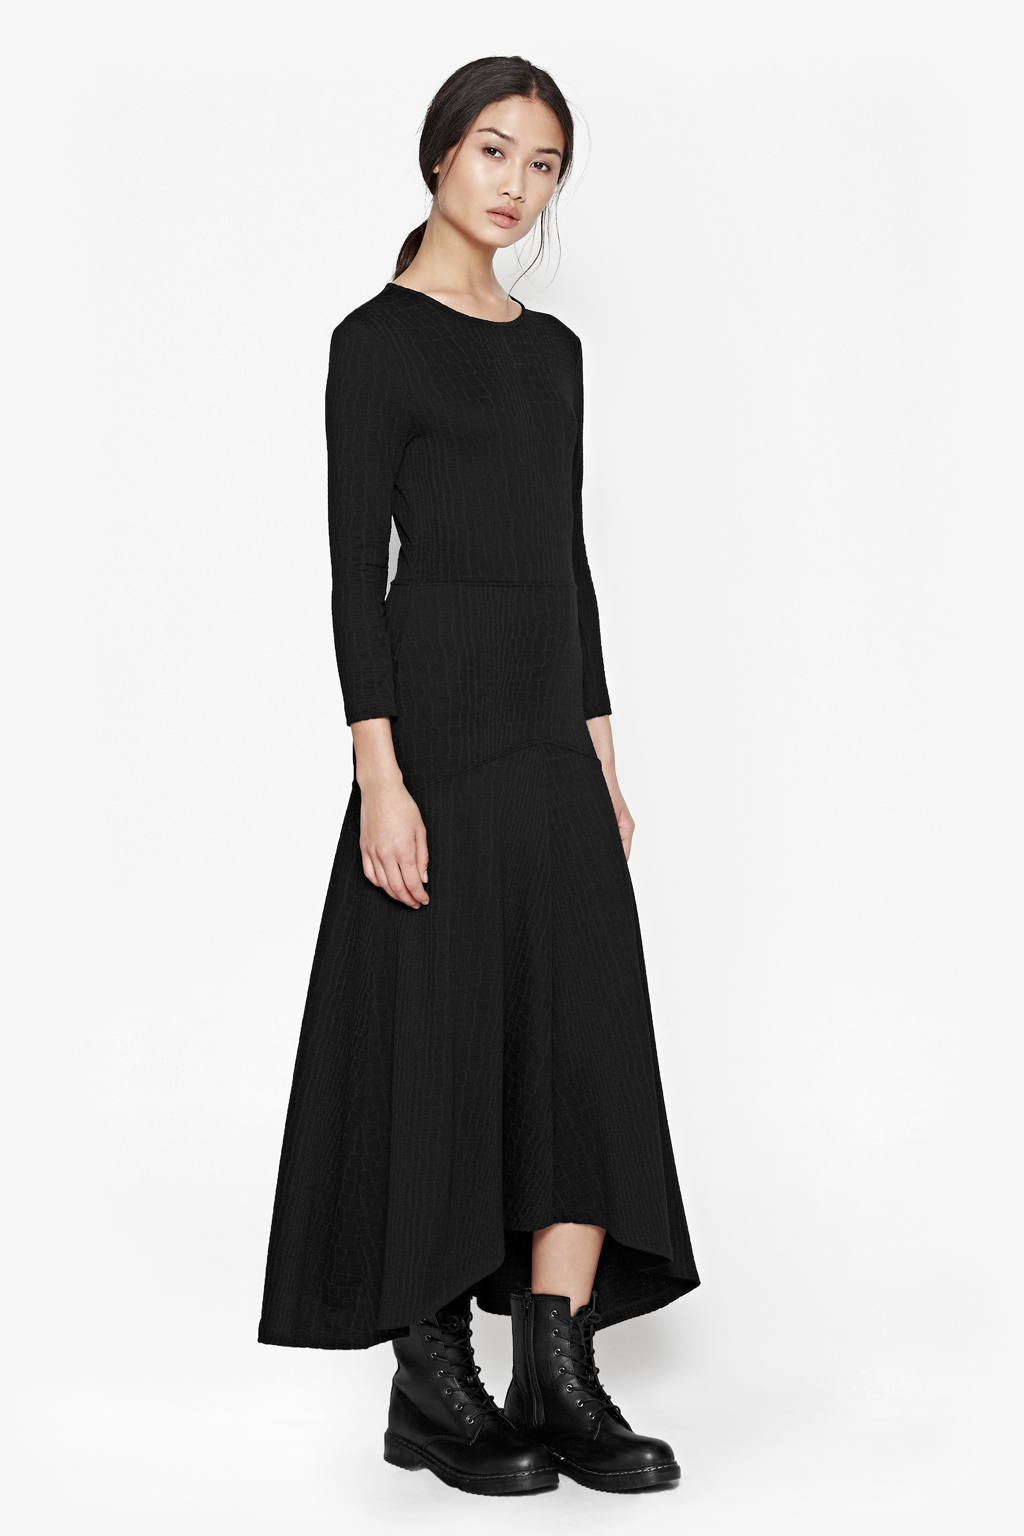 French connection Winter Snake Maxi Dress in Black - Lyst